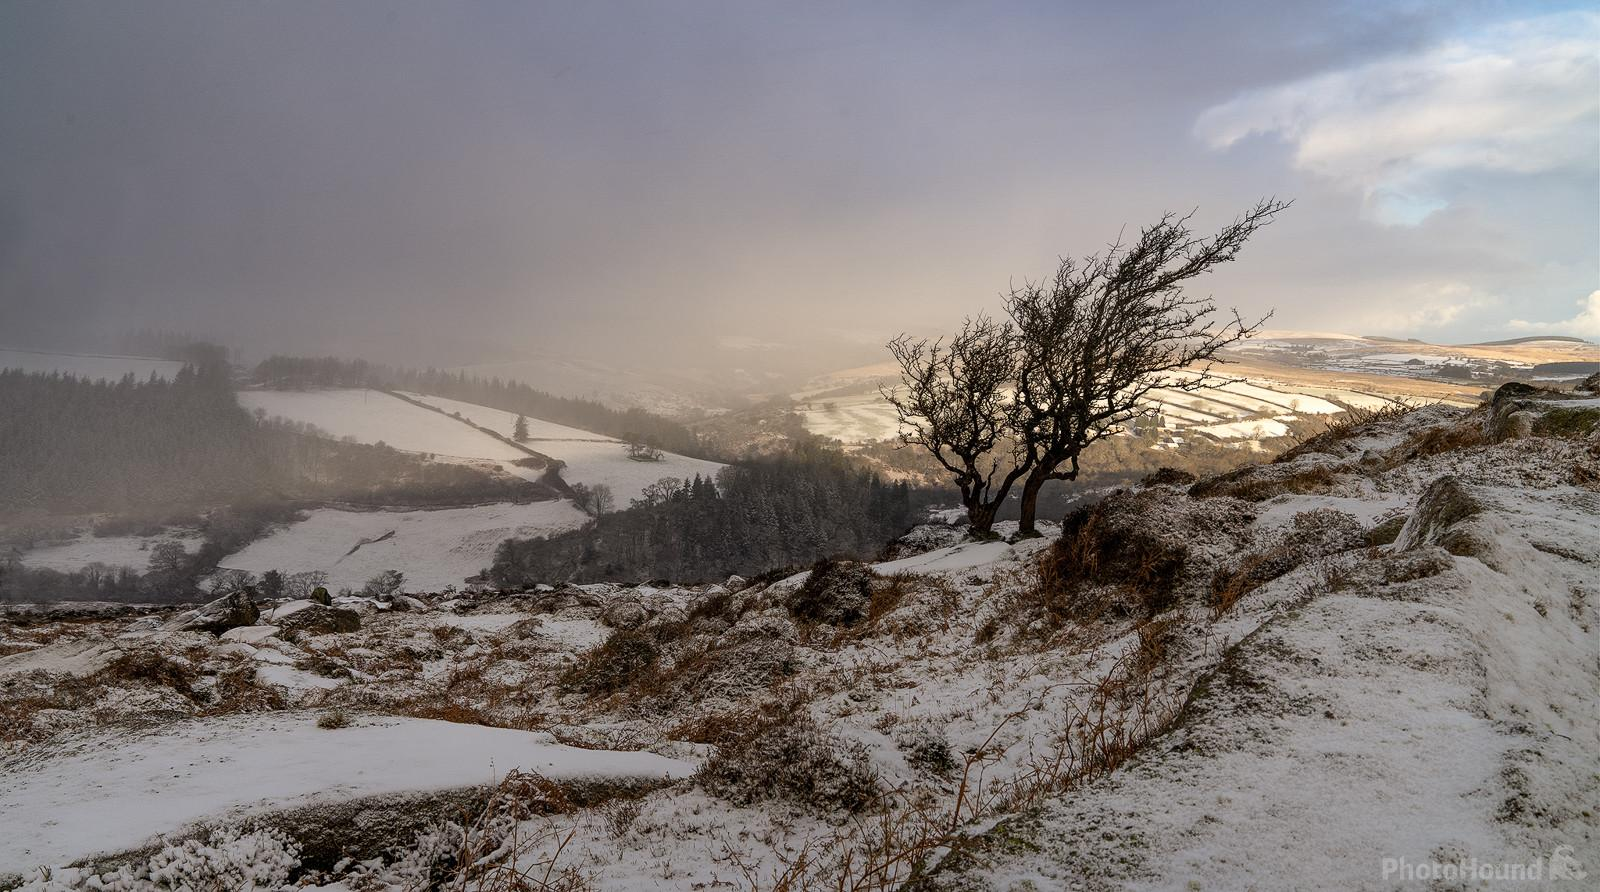 Yar Tor looking northwest on a snowy sunset in winter.